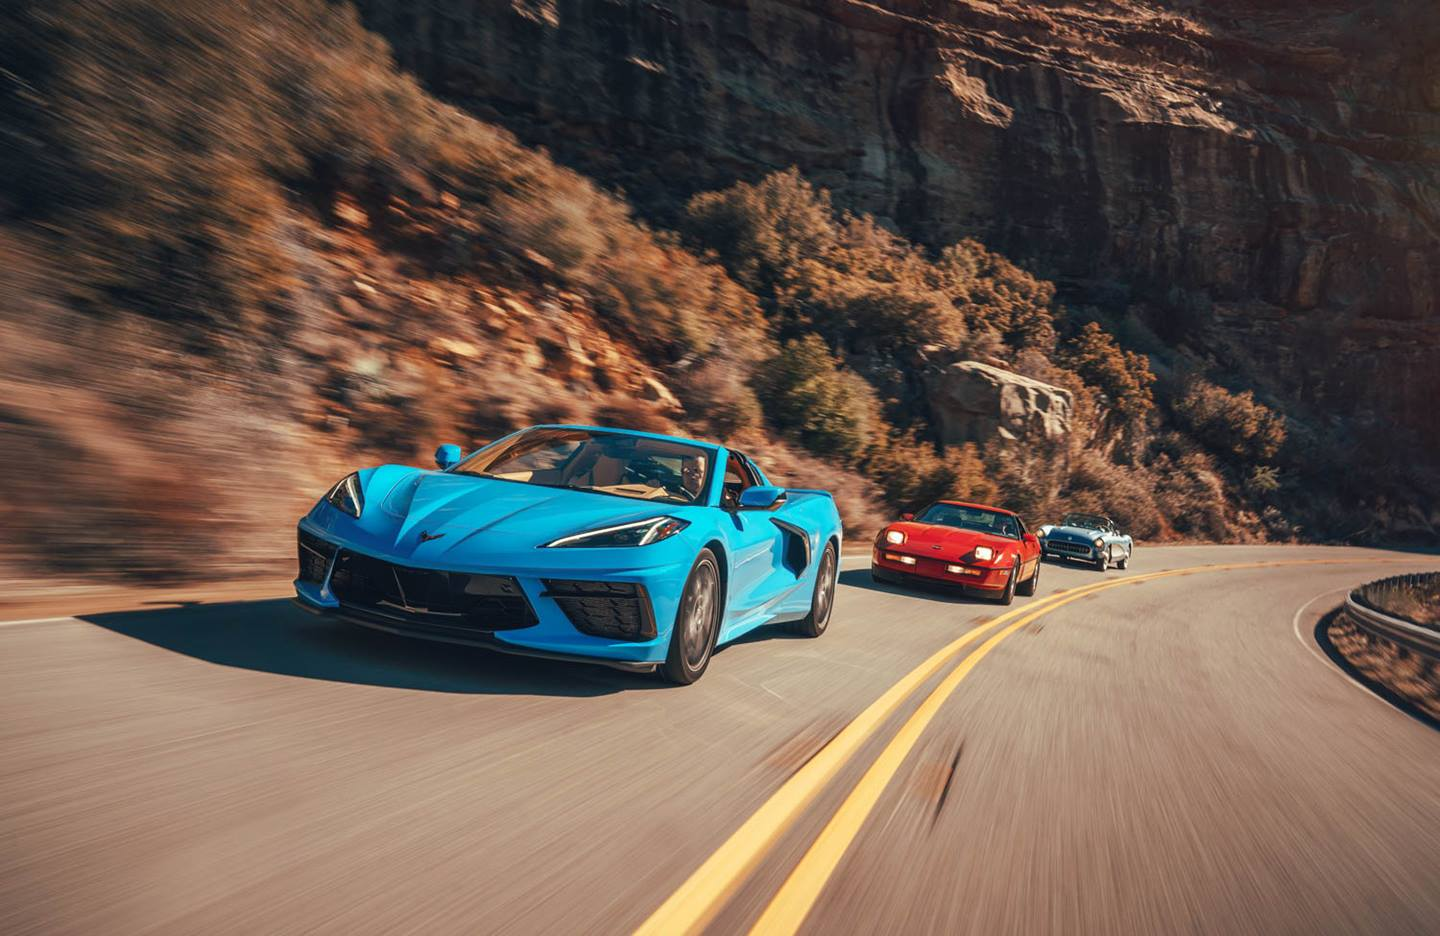 America's sports car has come a long way since 1953. We unite the mid-engine C8 with two previous Corvette turning points.